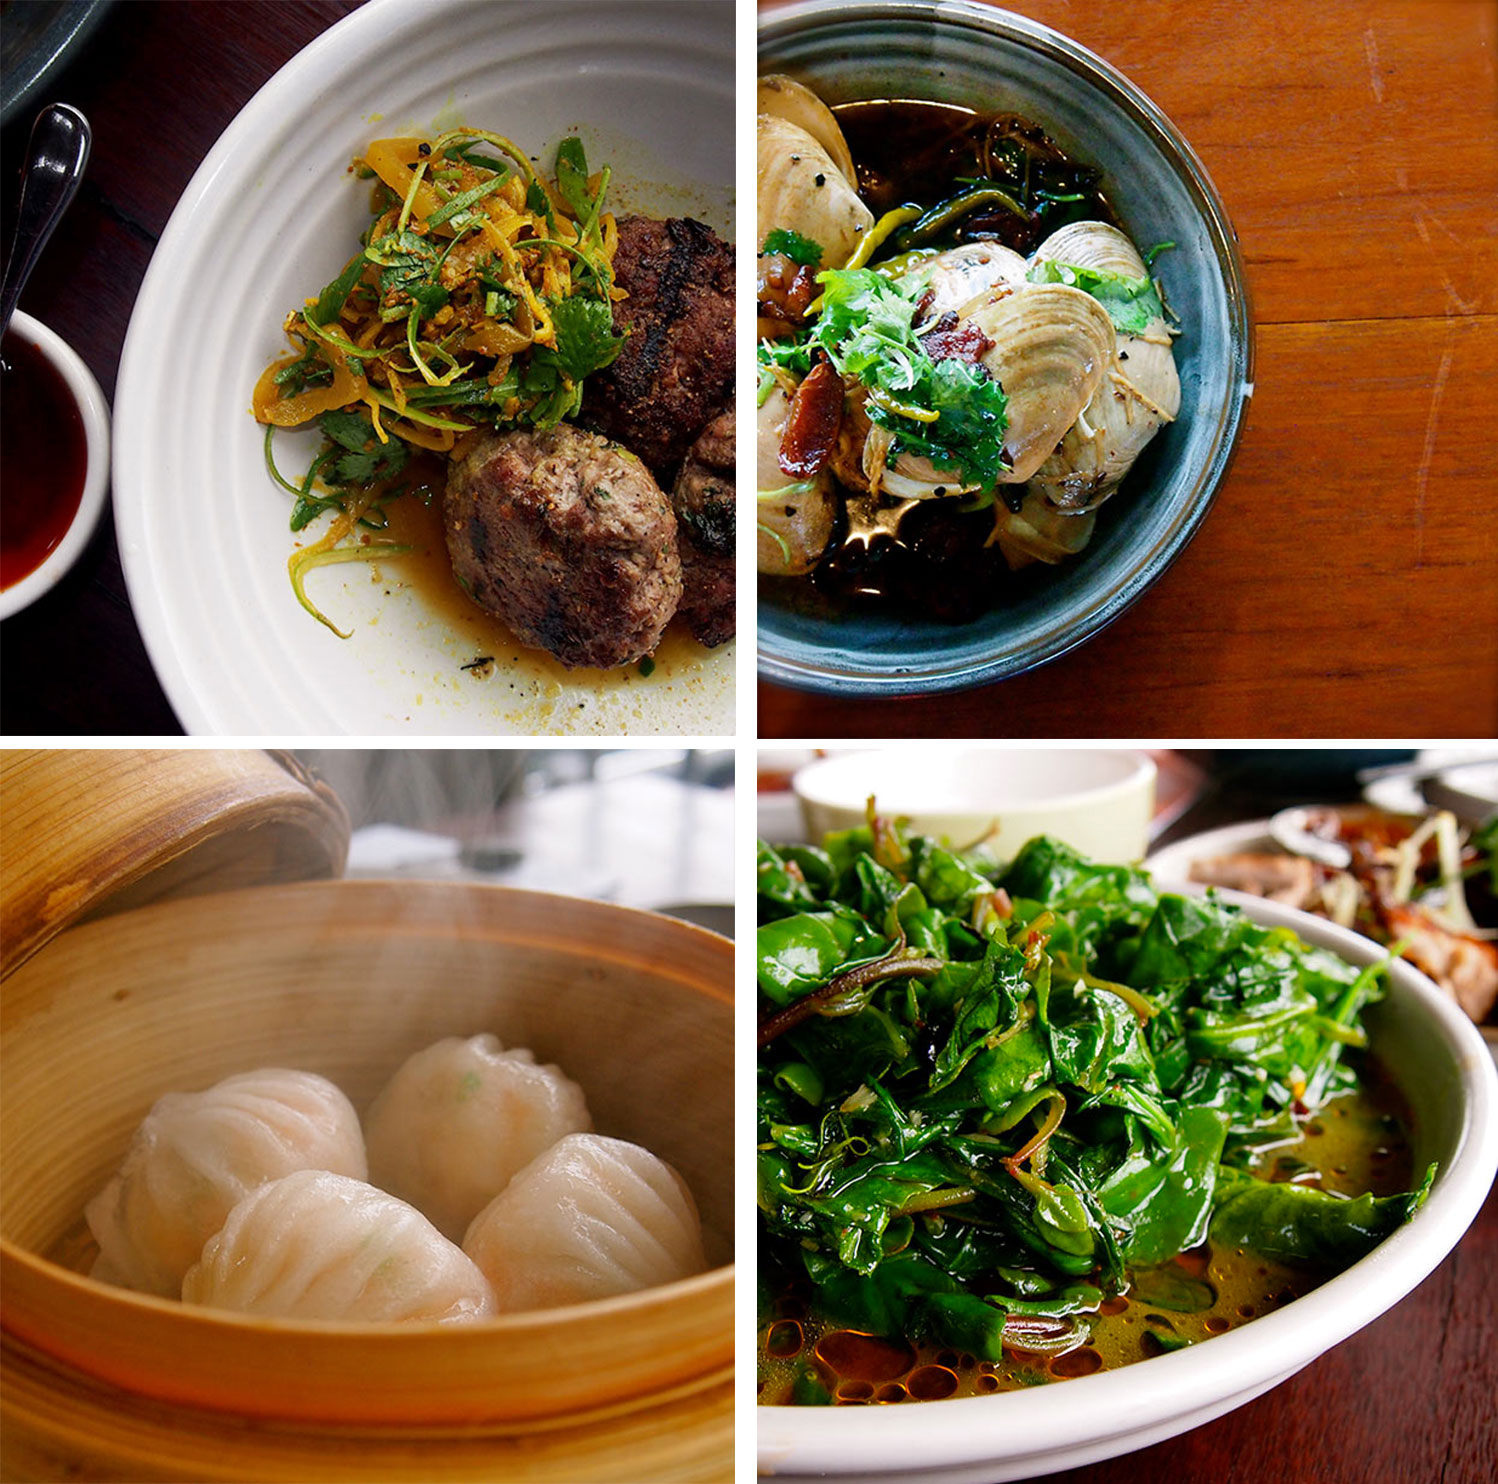 The Blue Breeze caters for all tastes; vegetarians, meat eaters and vegans.